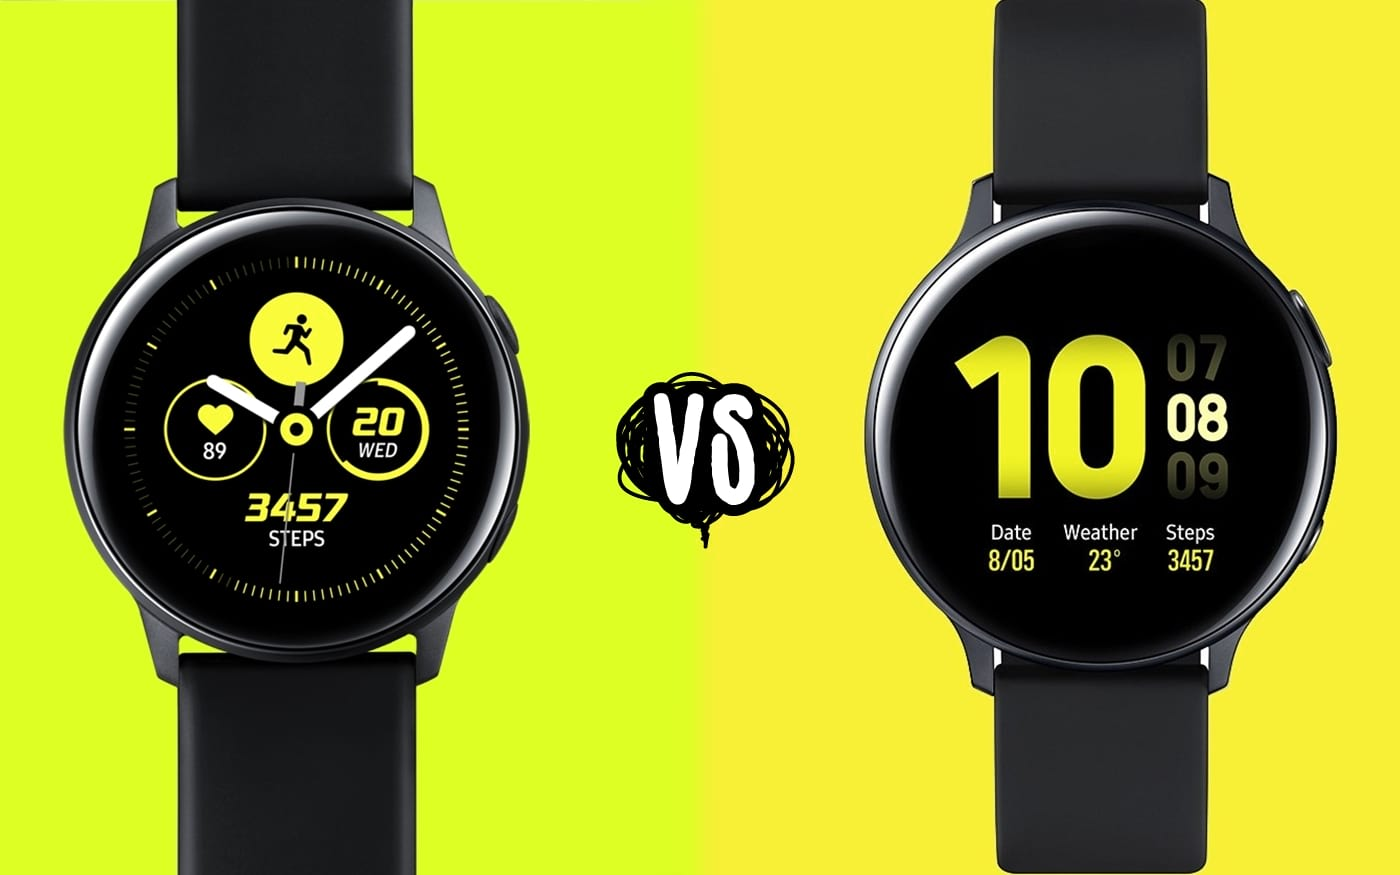 Samsung Galaxy Watch Active 2 vs. Watch Active